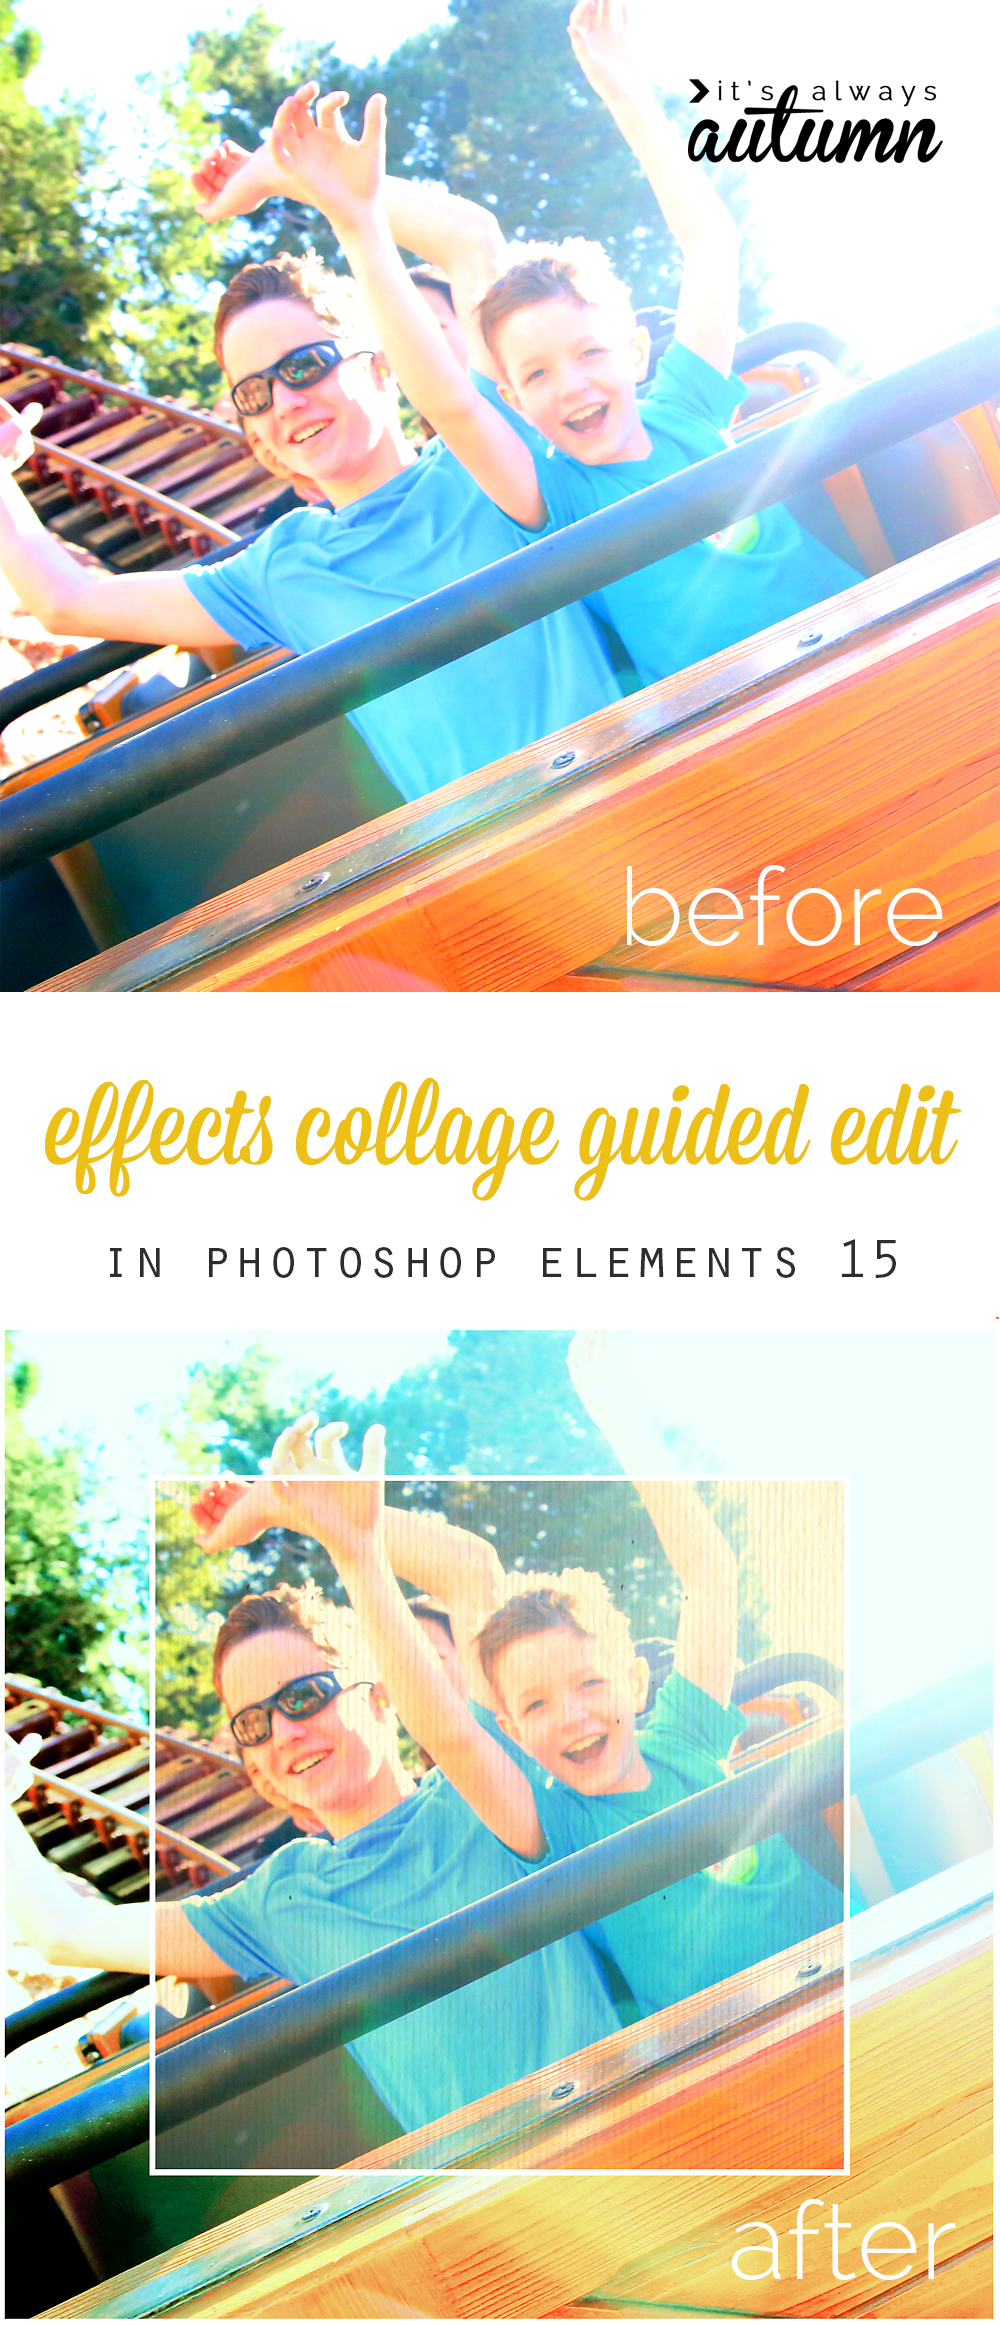 easy-photo-editing-tips-effects-collage-how-to-add-photoshop-elements-9